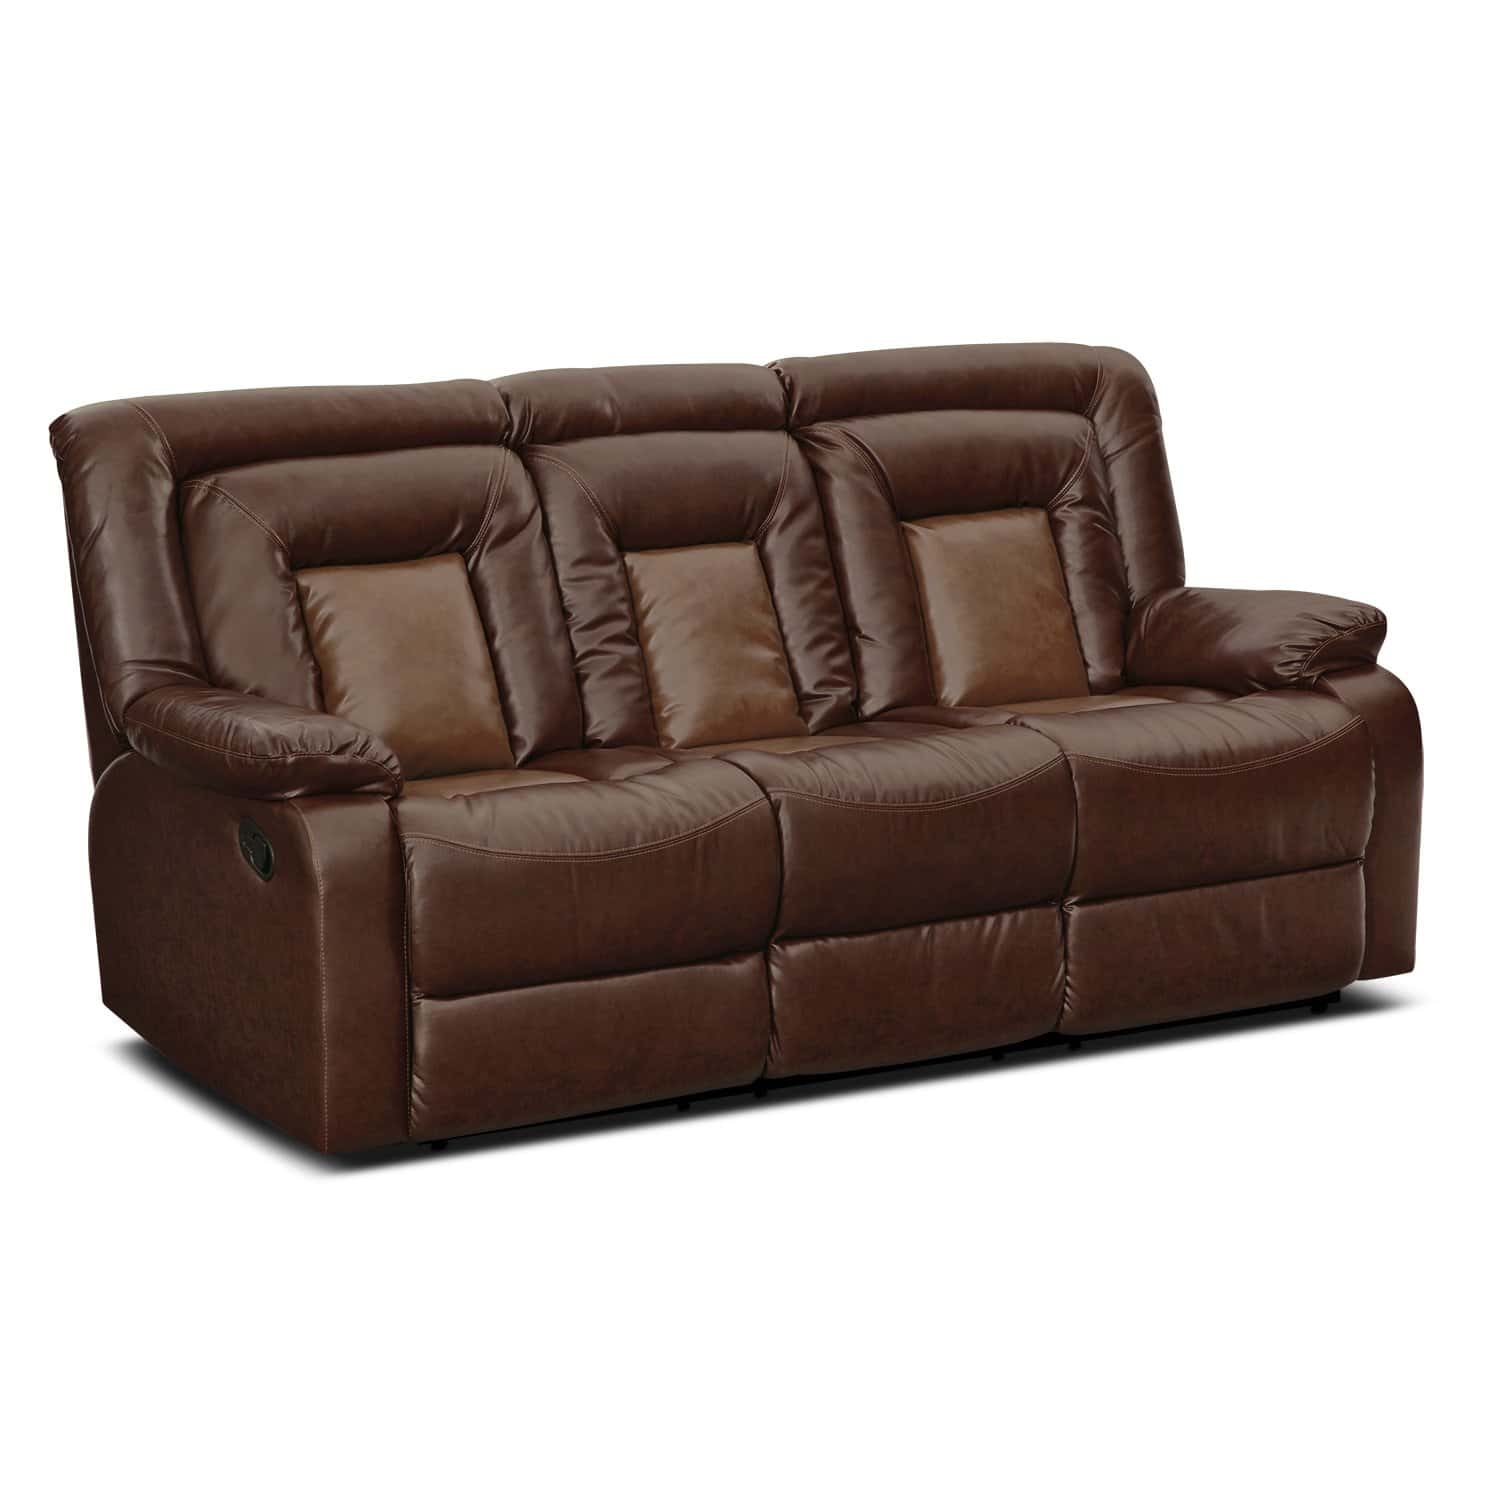 cobra dual reclining sofa reviews how much does a taylor king cost adual  loccie better homes gardens ideas